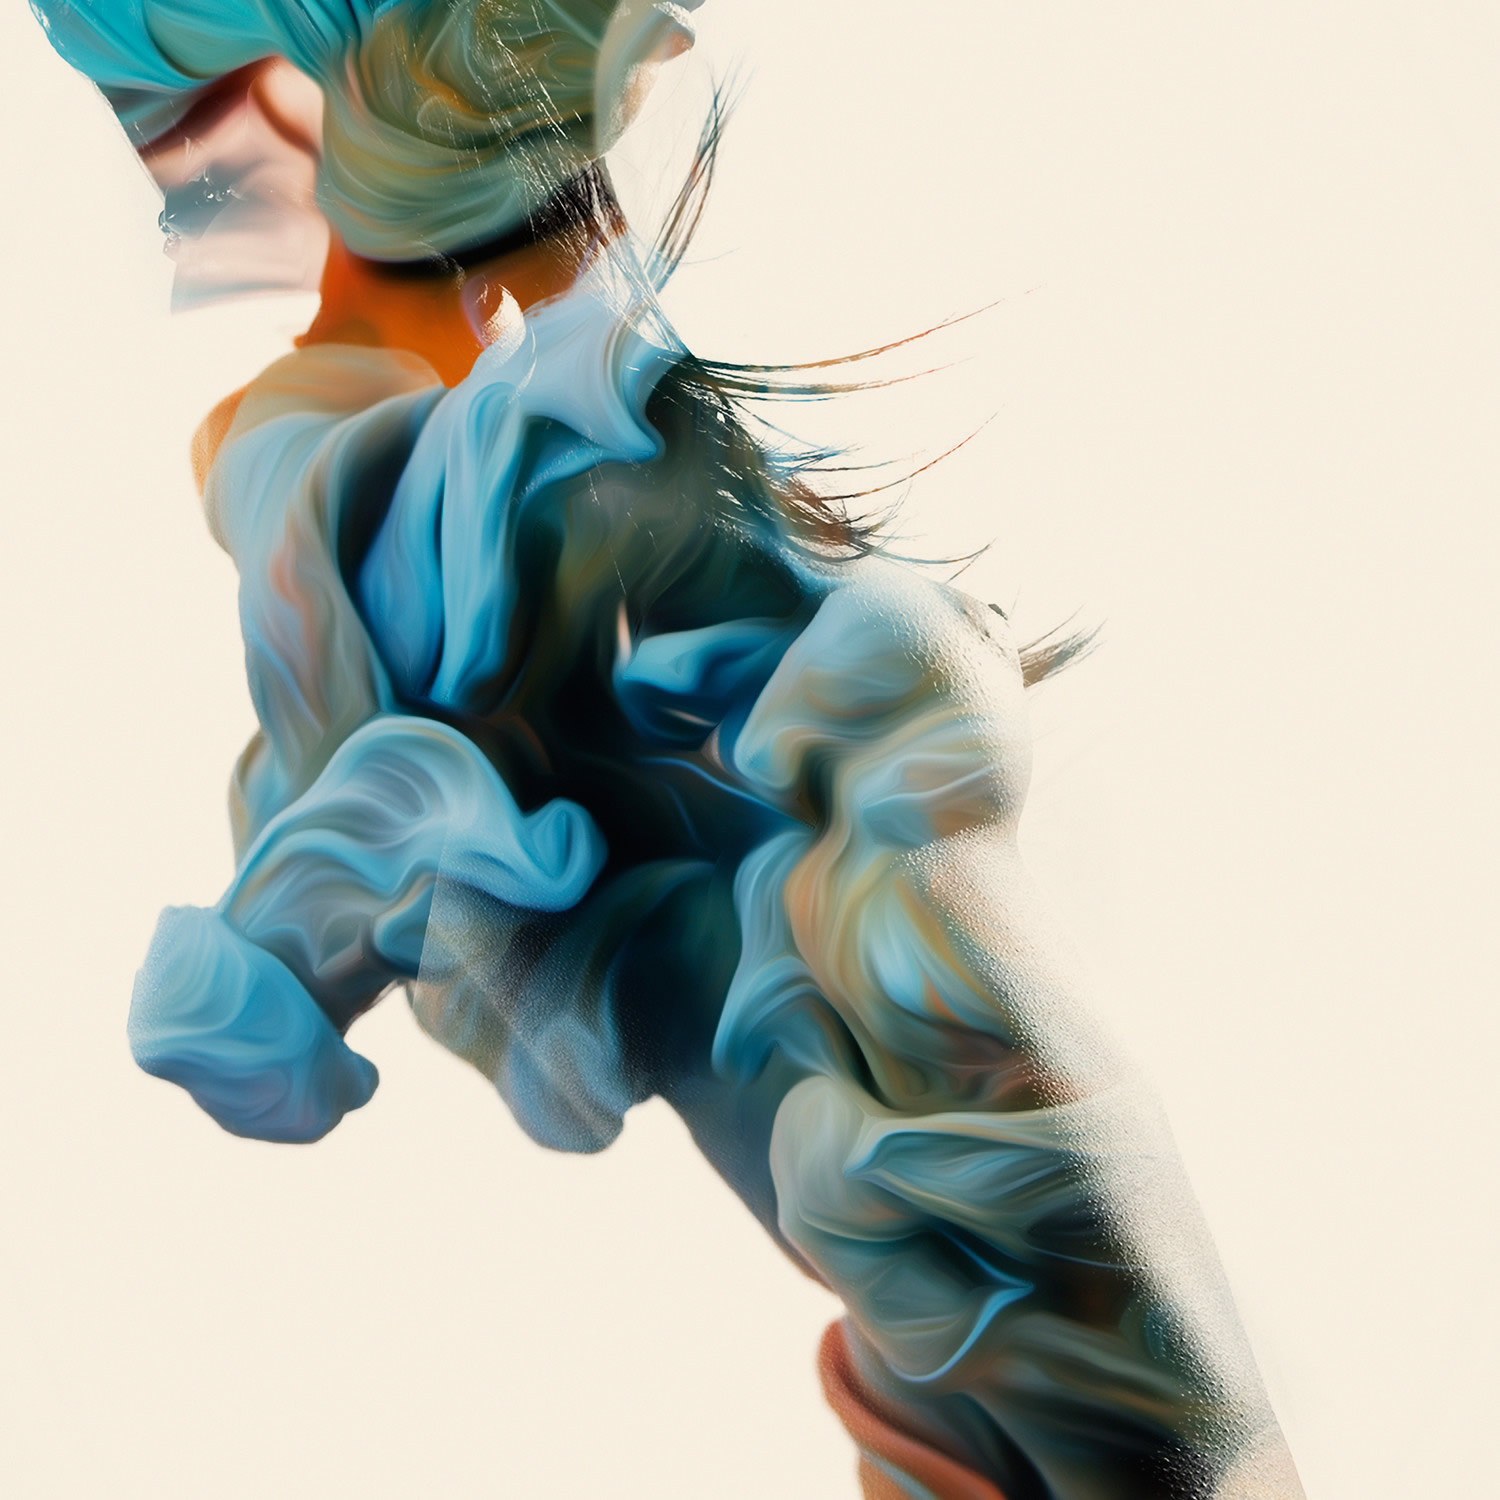 trivial expose, woman in blue, by woman in cloud liquid, Trivial Expose by alberto seveso